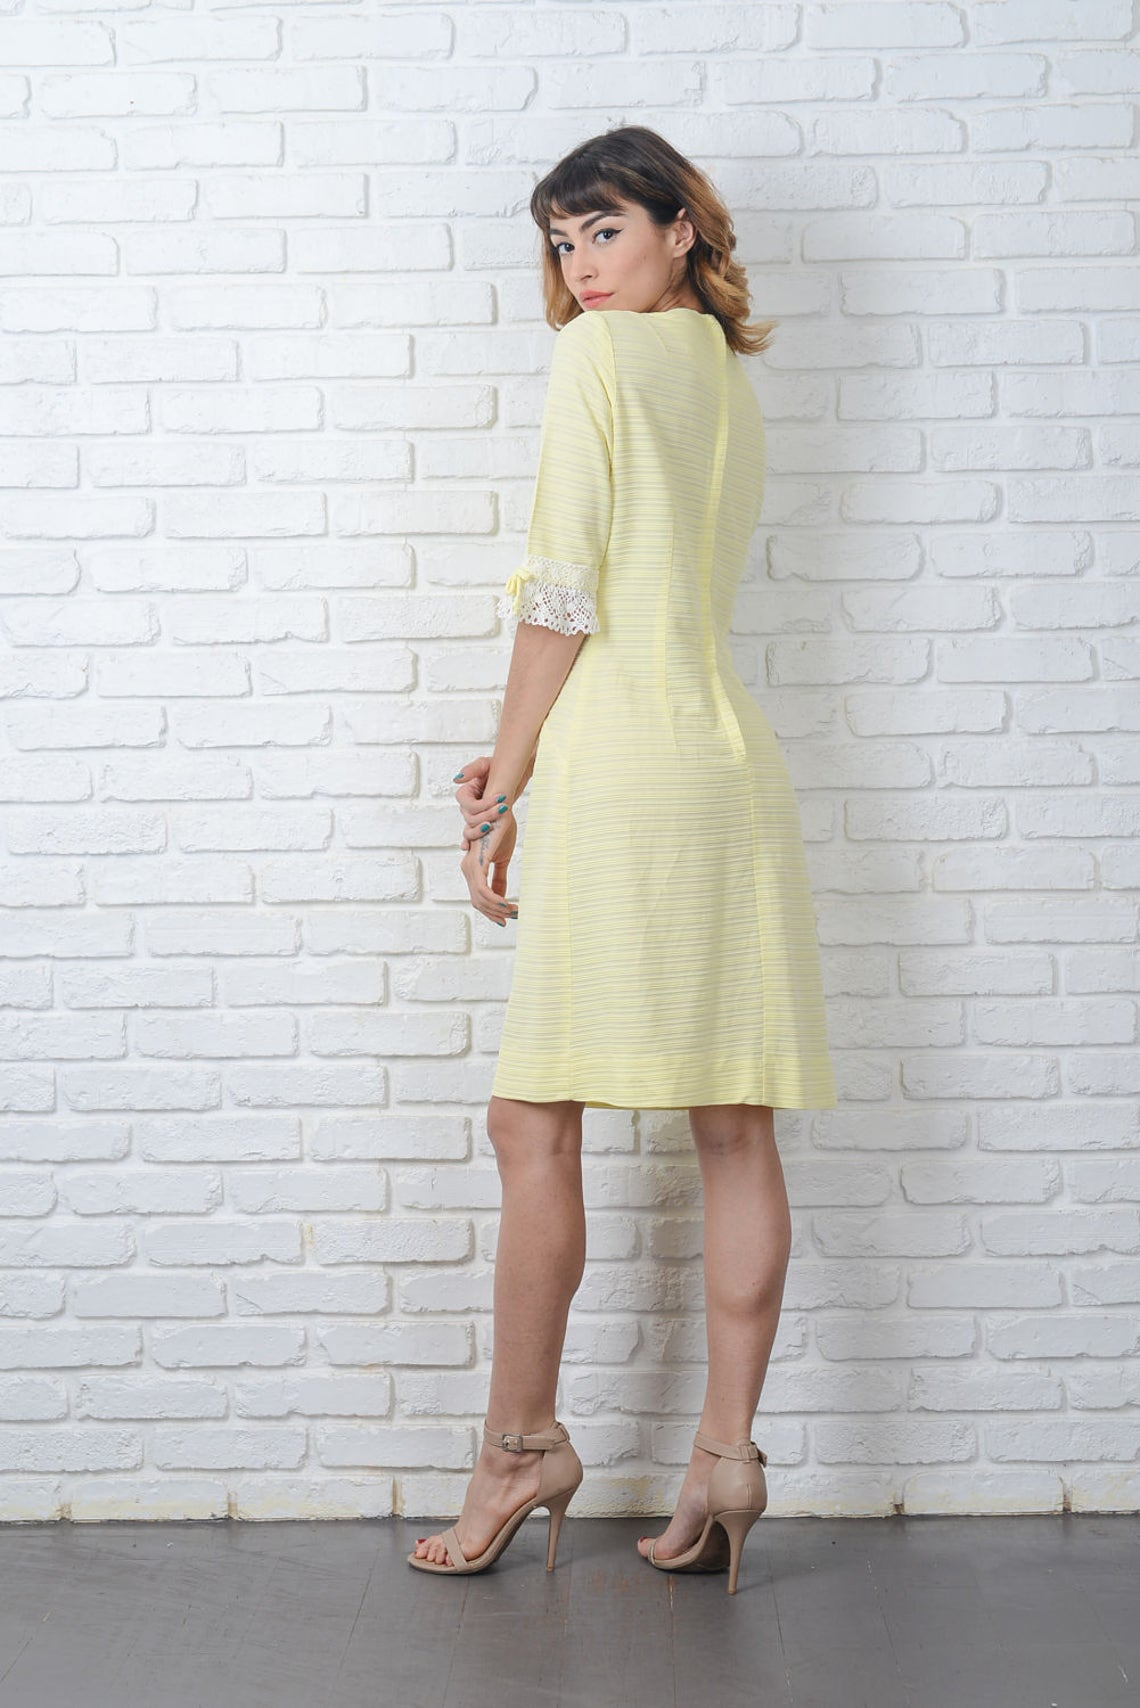 Vintage 60s Yellow Mod Dress Striped Crochet Lace Cocktail